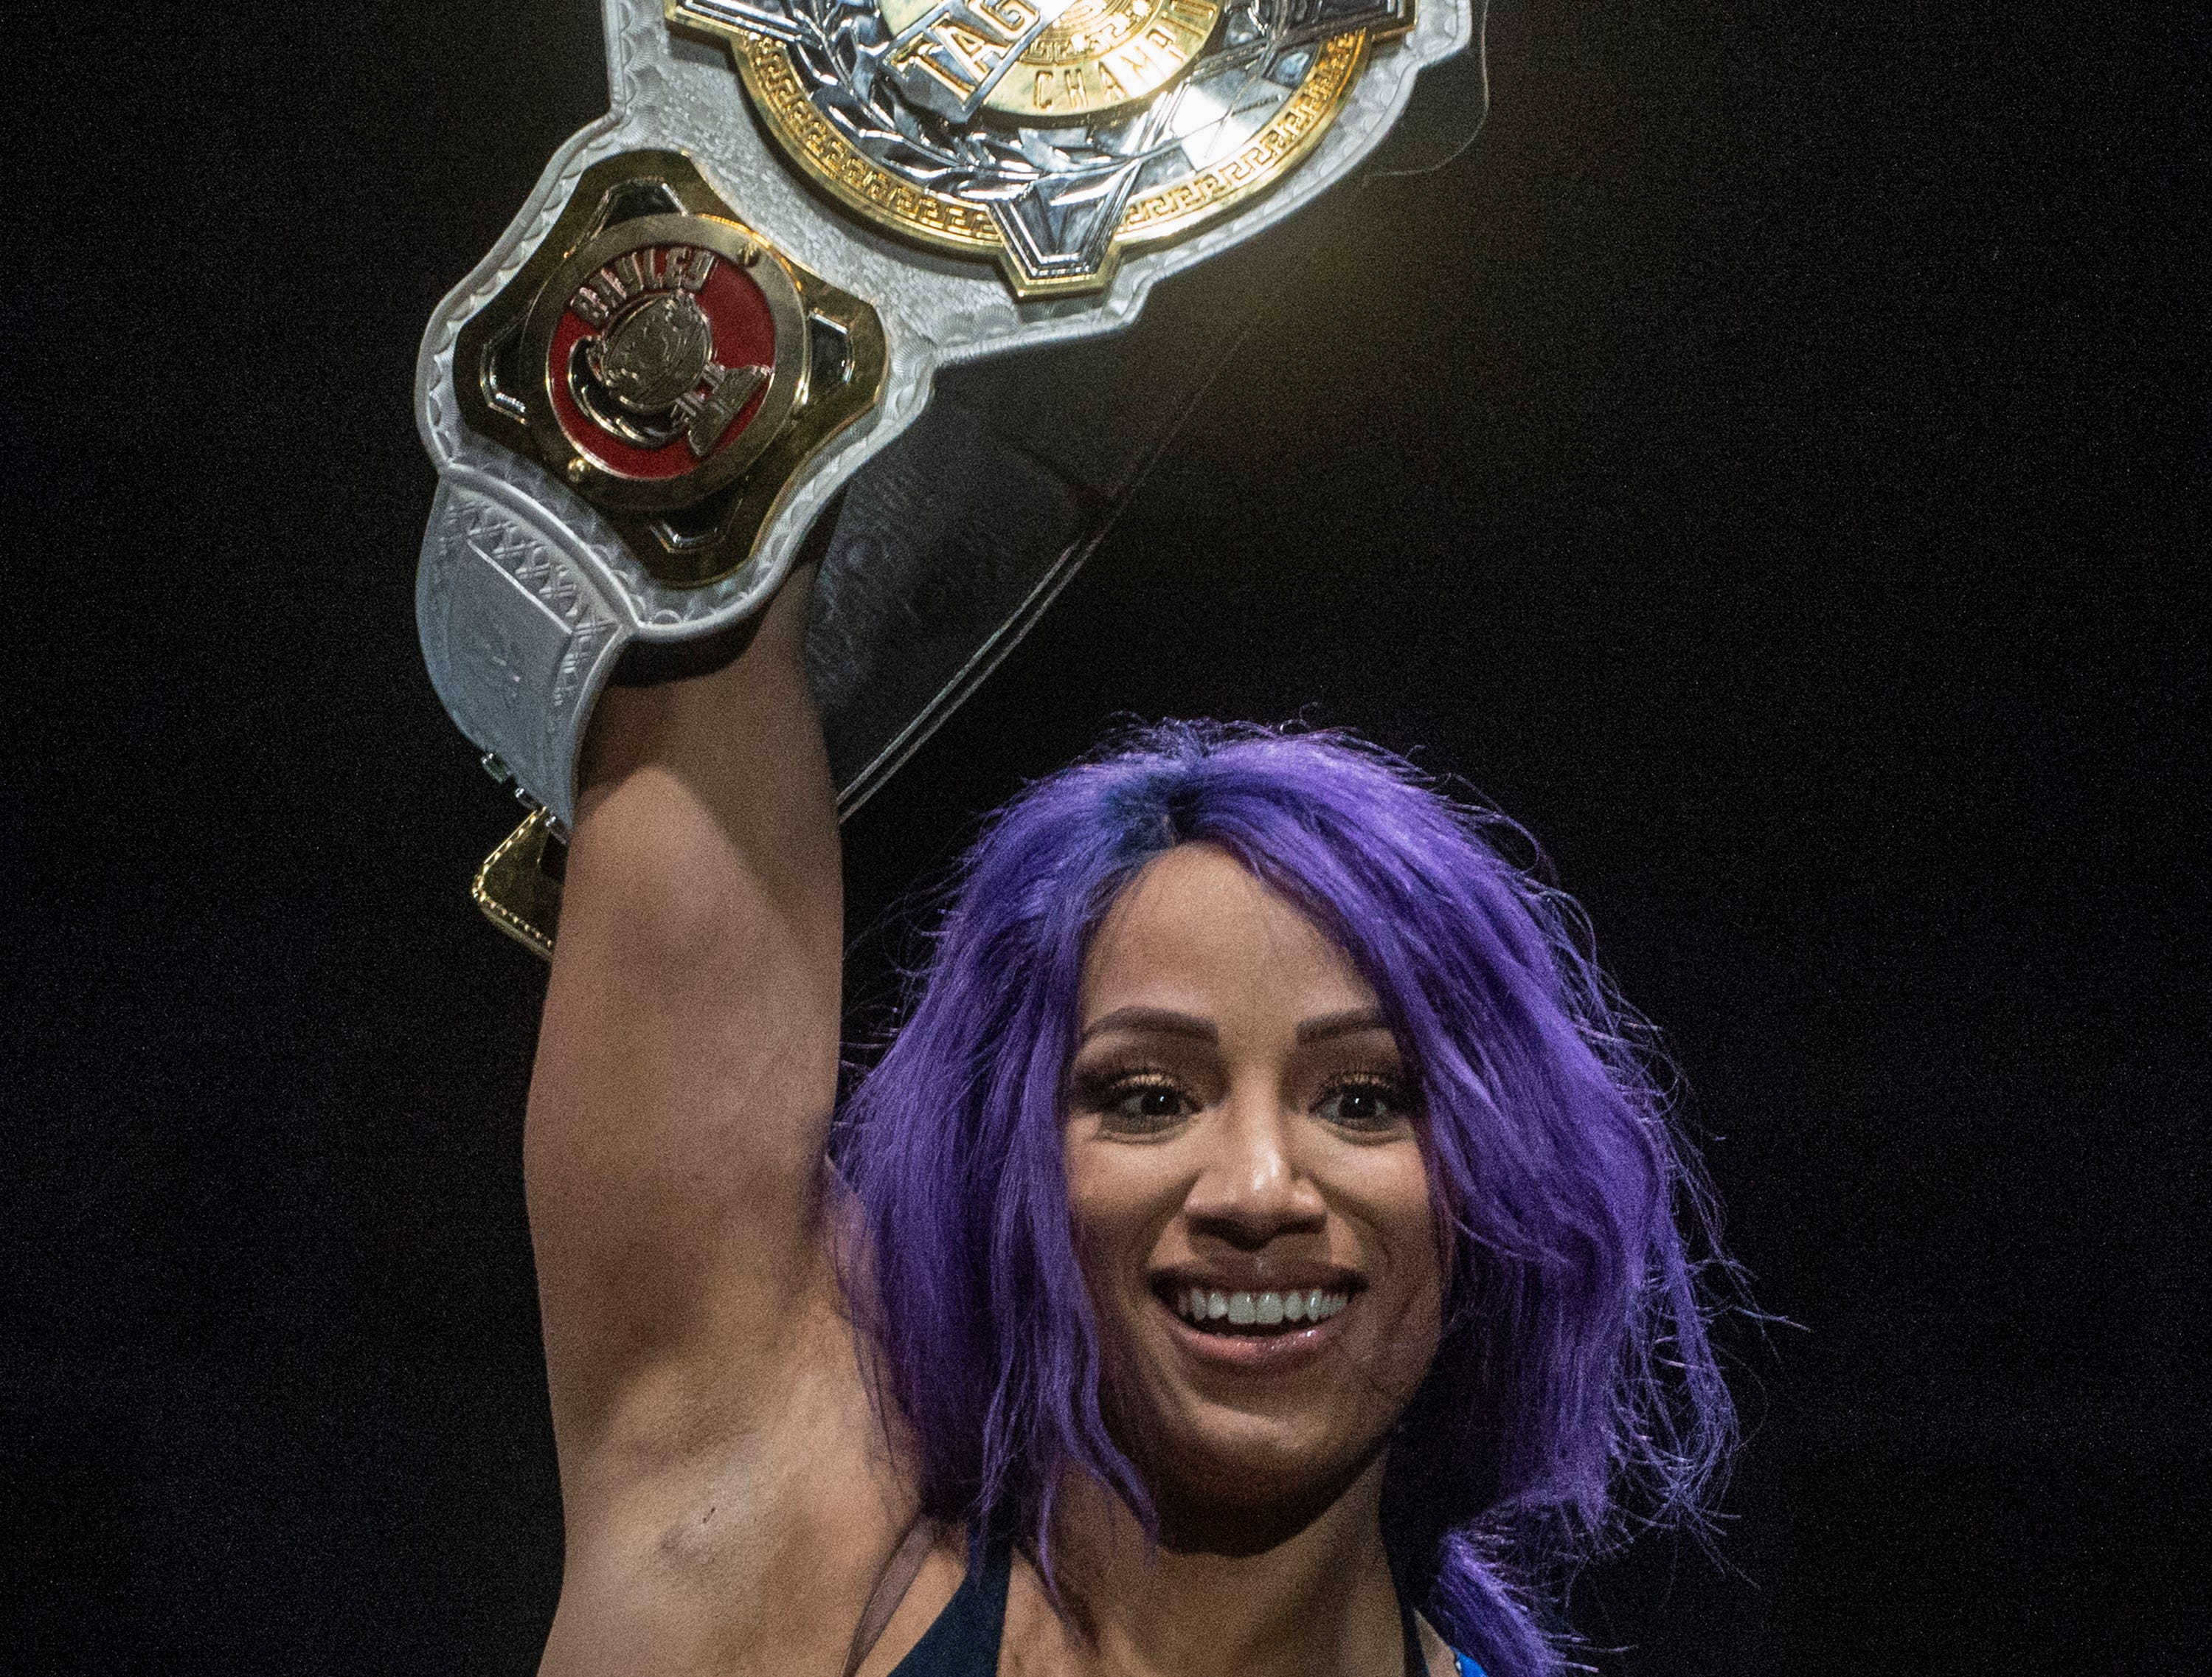 Sasha Banks raises her championship belt. Sasha Banks and Bayley defend their tag team championship against the Riott Squad. WWE Live Road to Wrestlemania came to Garrett Coliseum in Montgomery on Sunday, Feb. 24, 2019.